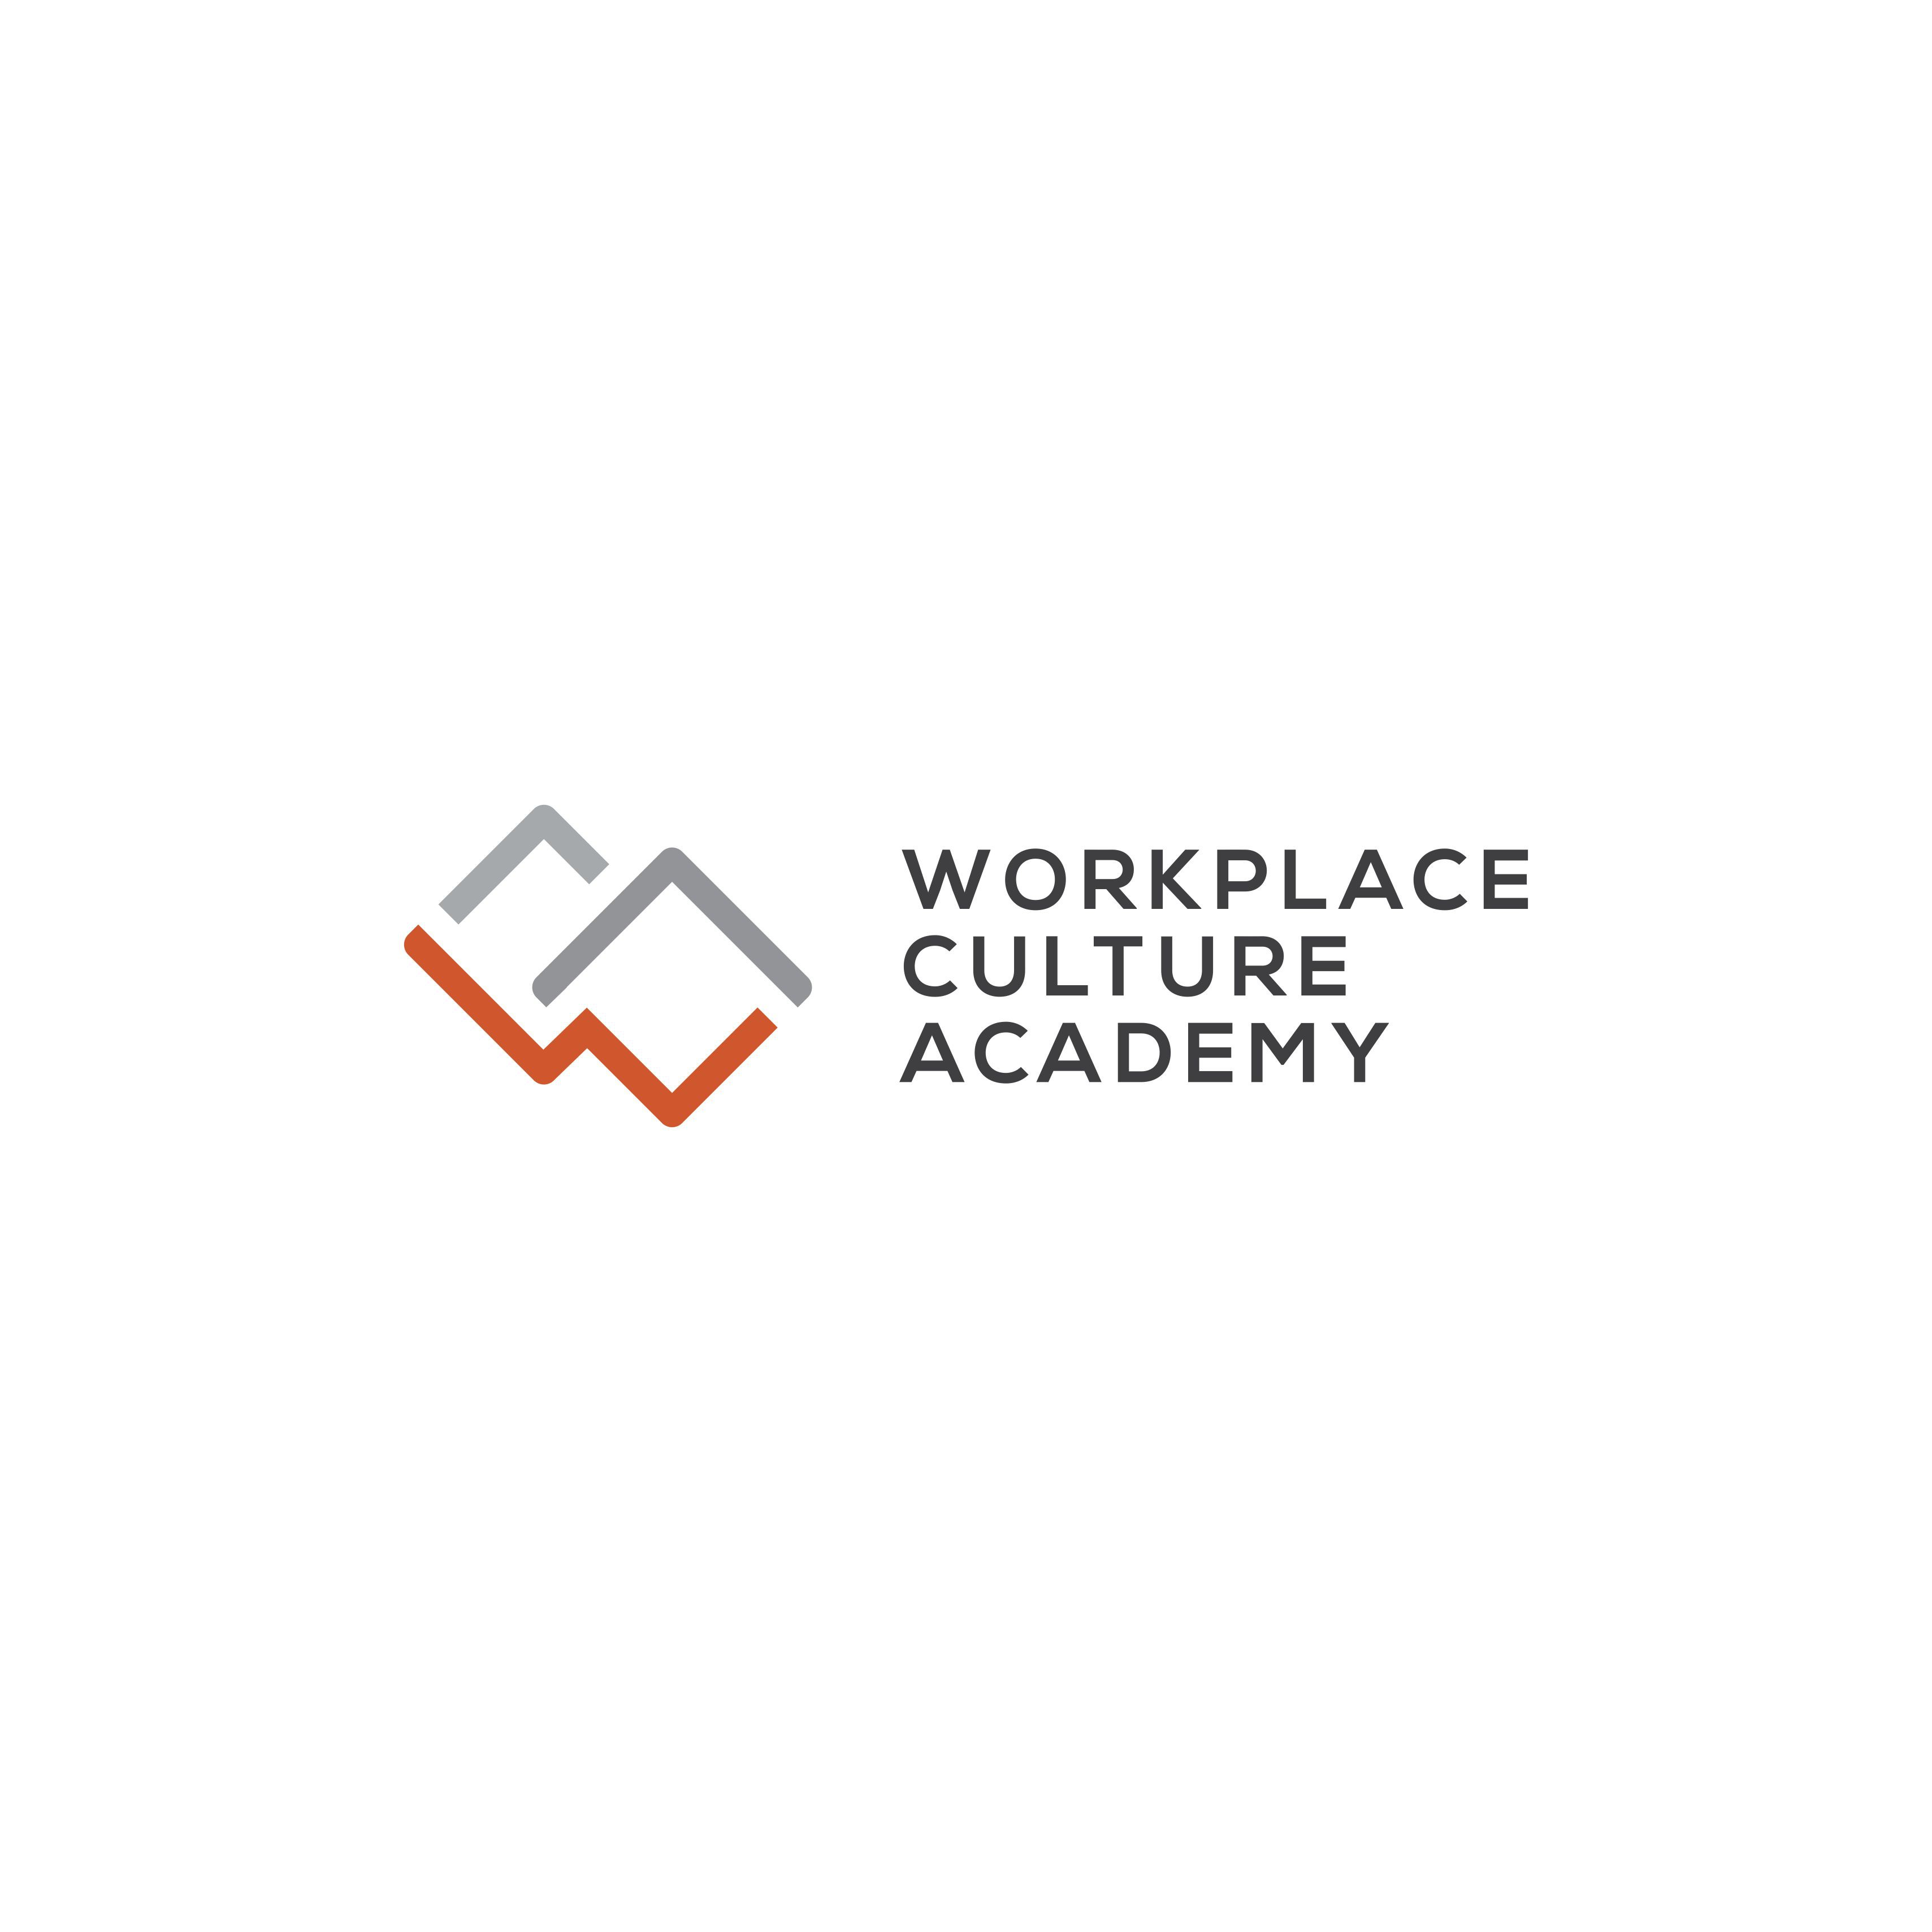 The new Workplace Culture Academy needs a nice logo